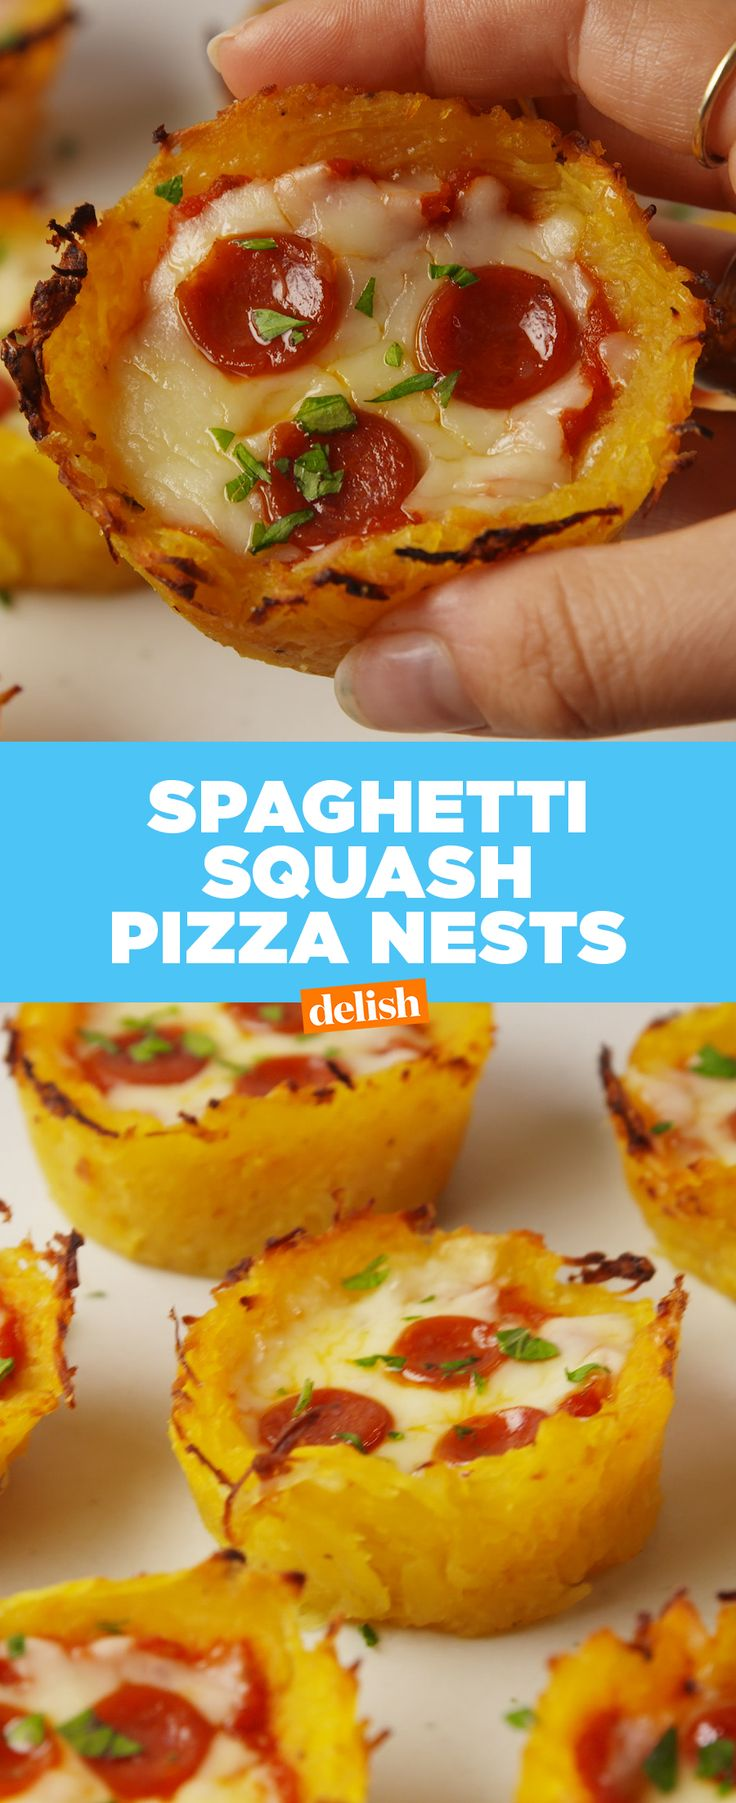 If you love pizza bagels, you're going to freak over our low-carb version. Get the recipe at Delish.com.